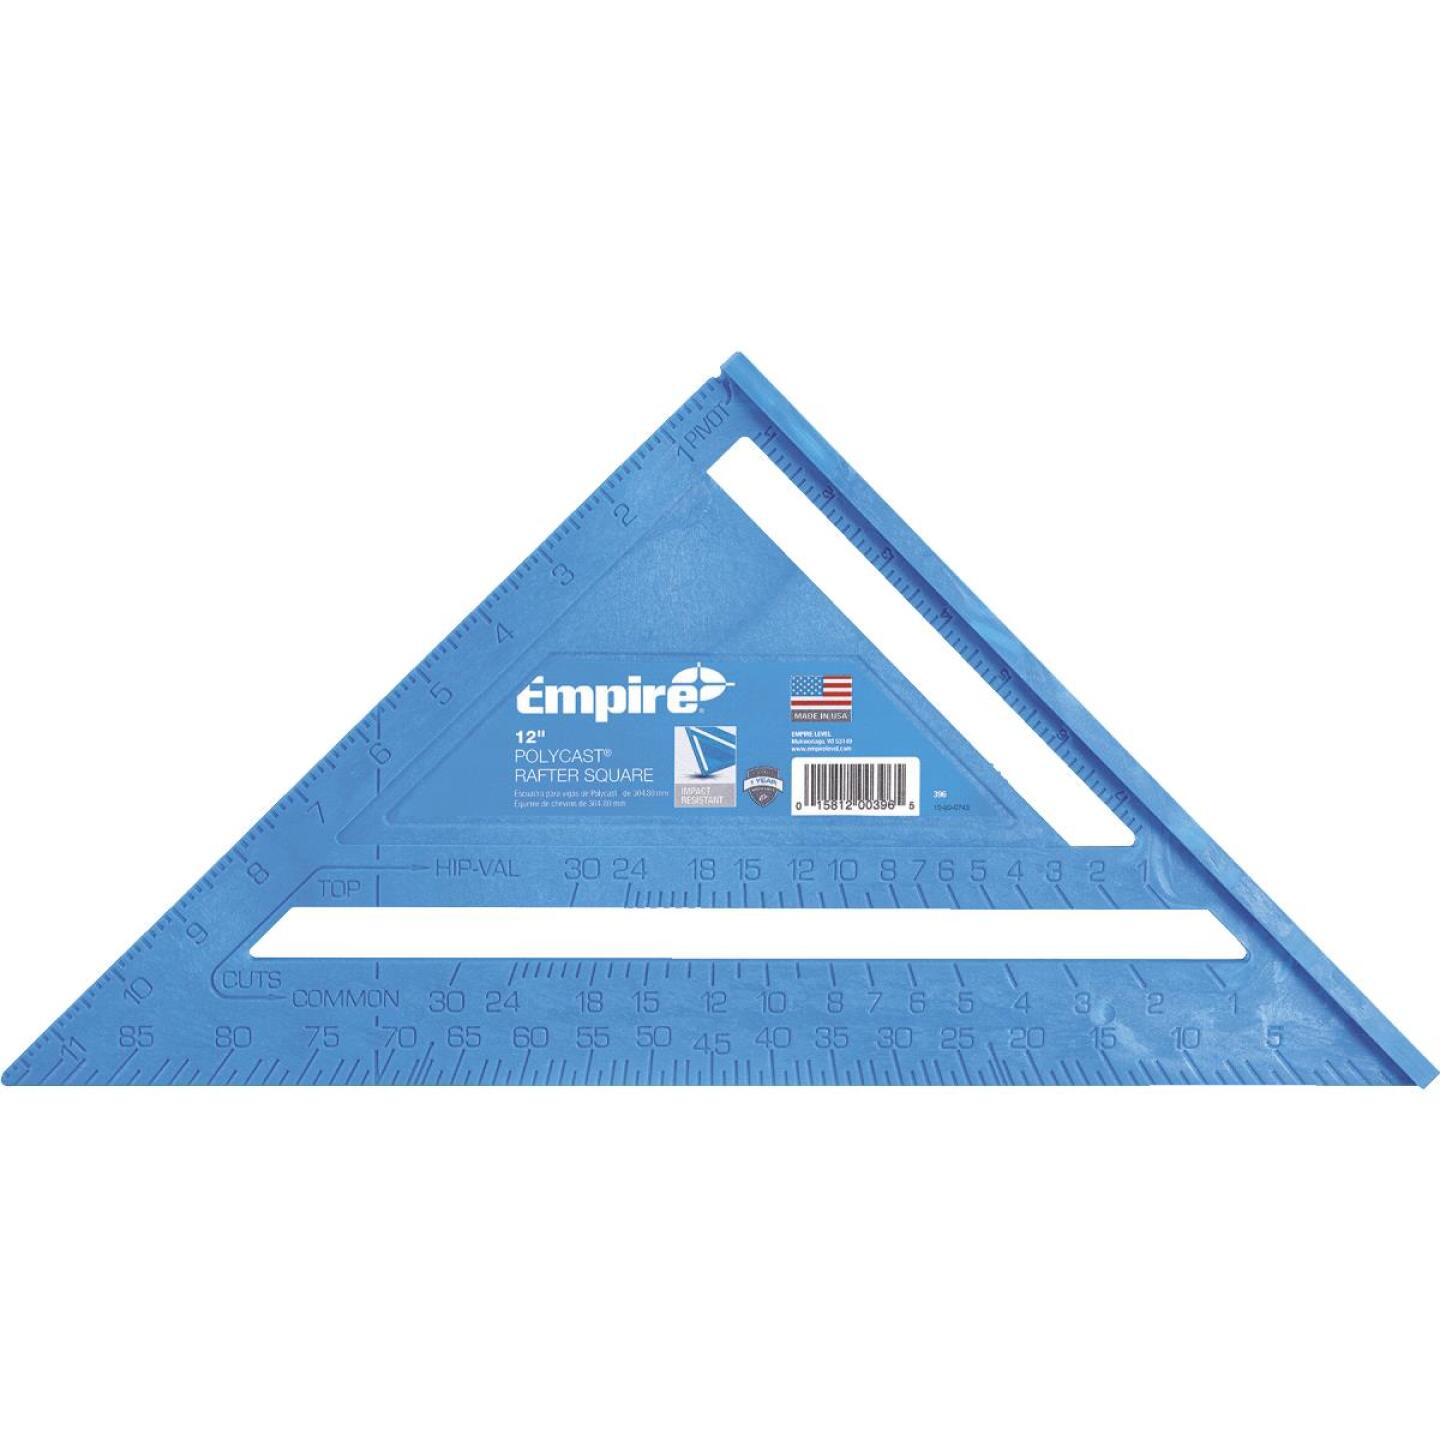 Empire 12 In. Plastic Polysquare Rafter Square Image 1